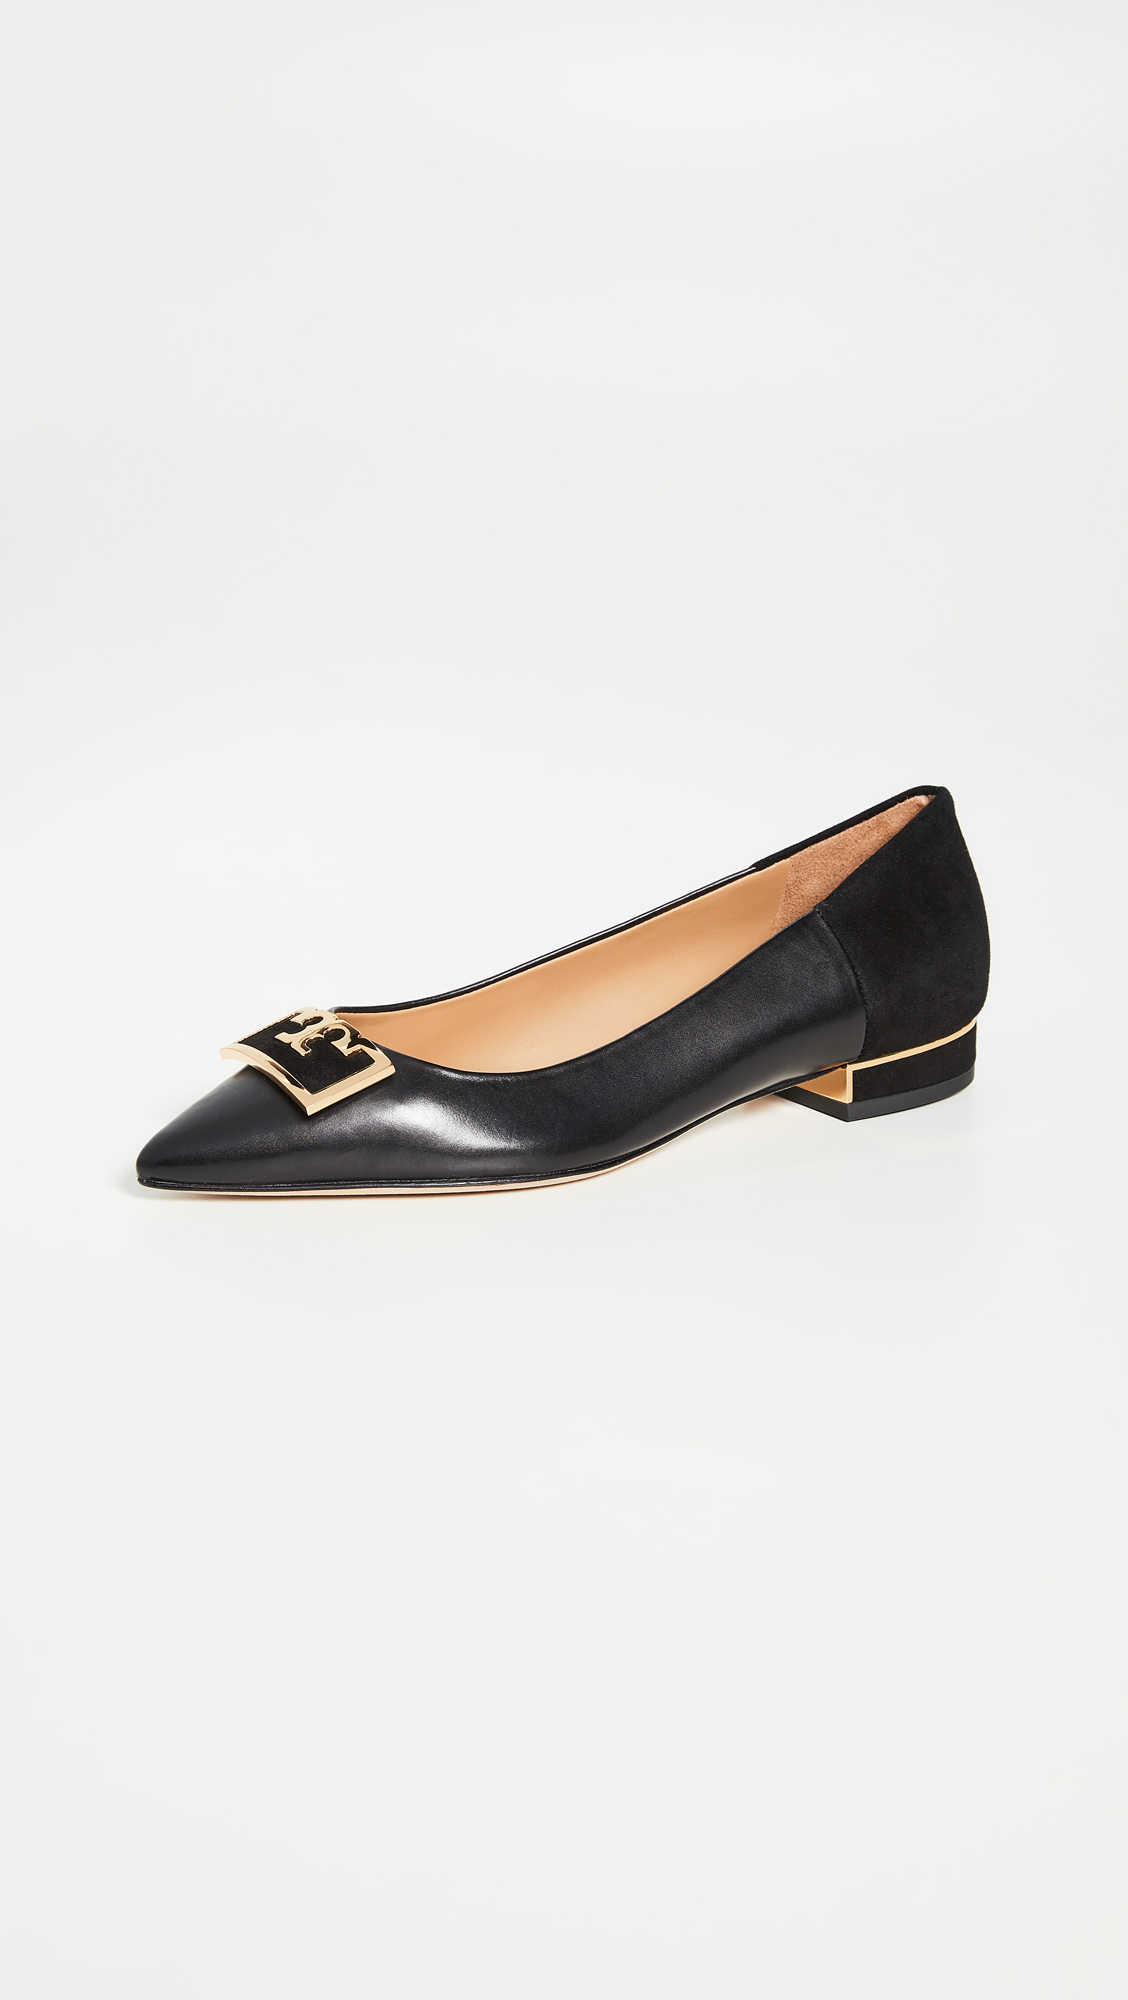 Tory Burch Black Pointed Toe Flats